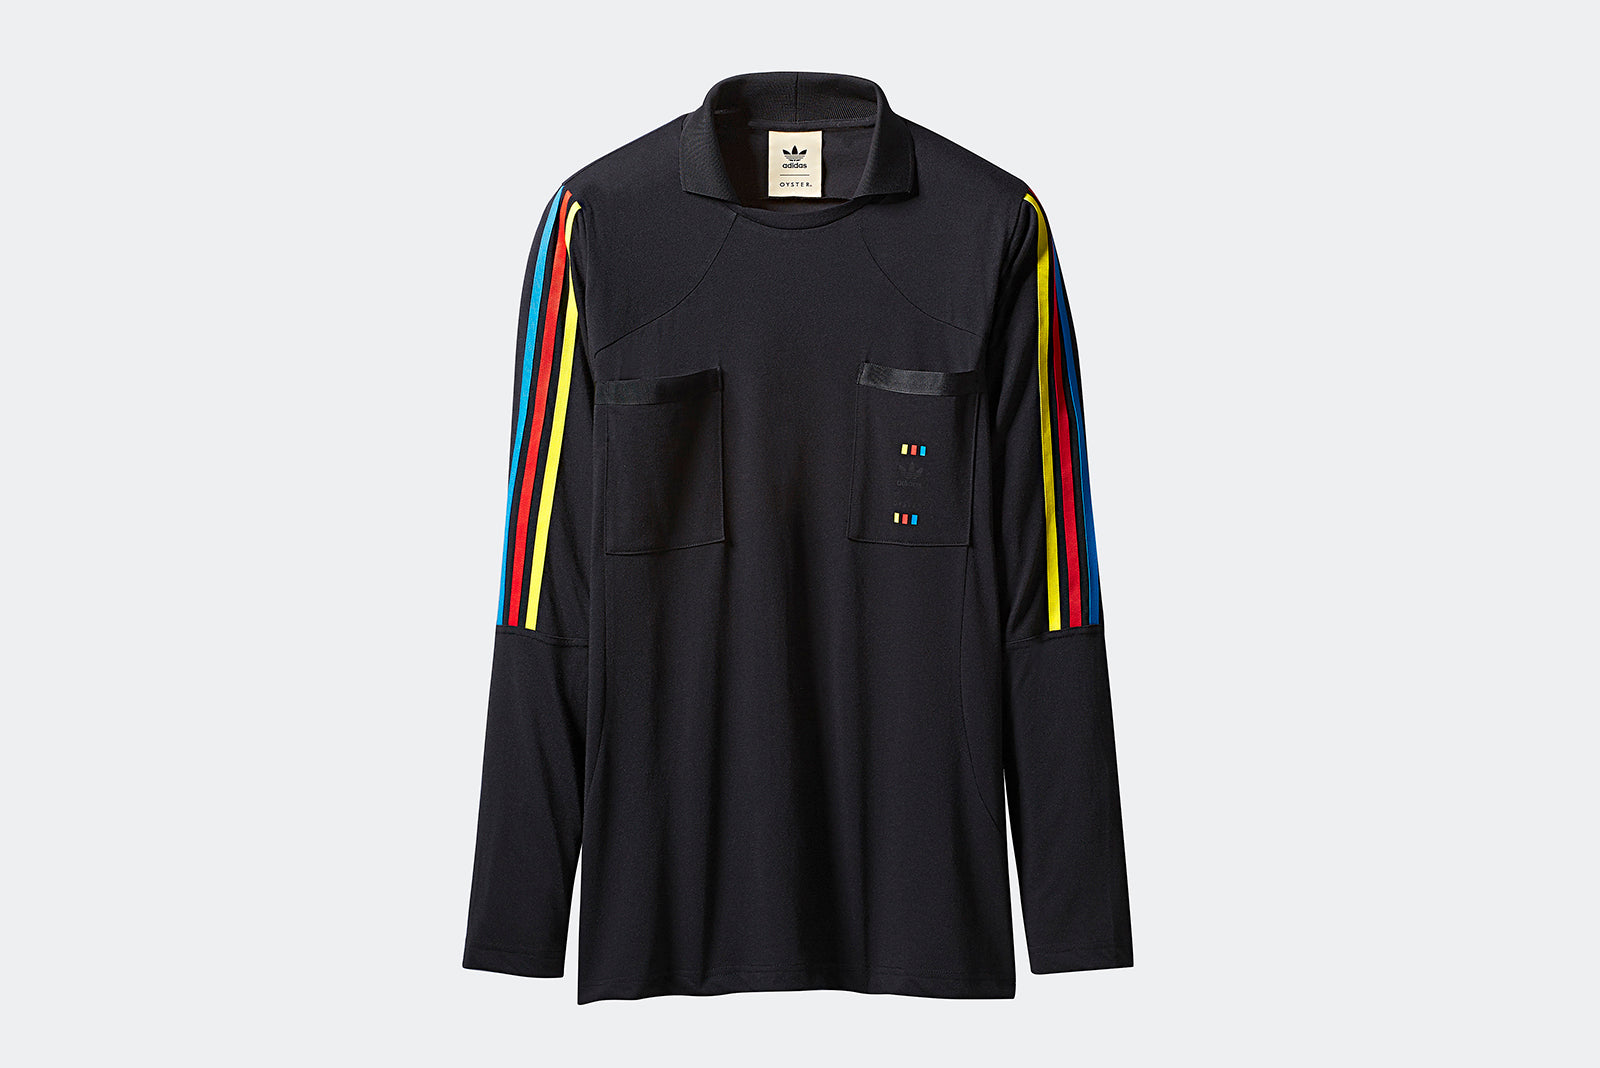 4599fcdd0dd adidas Originals 72 Hour Long Sleeve Tee x Oyster Holding DN8072  Blue Bright Blue Price  £69.00. Launch  Thursday 27th of September ONLINE   23 00BST